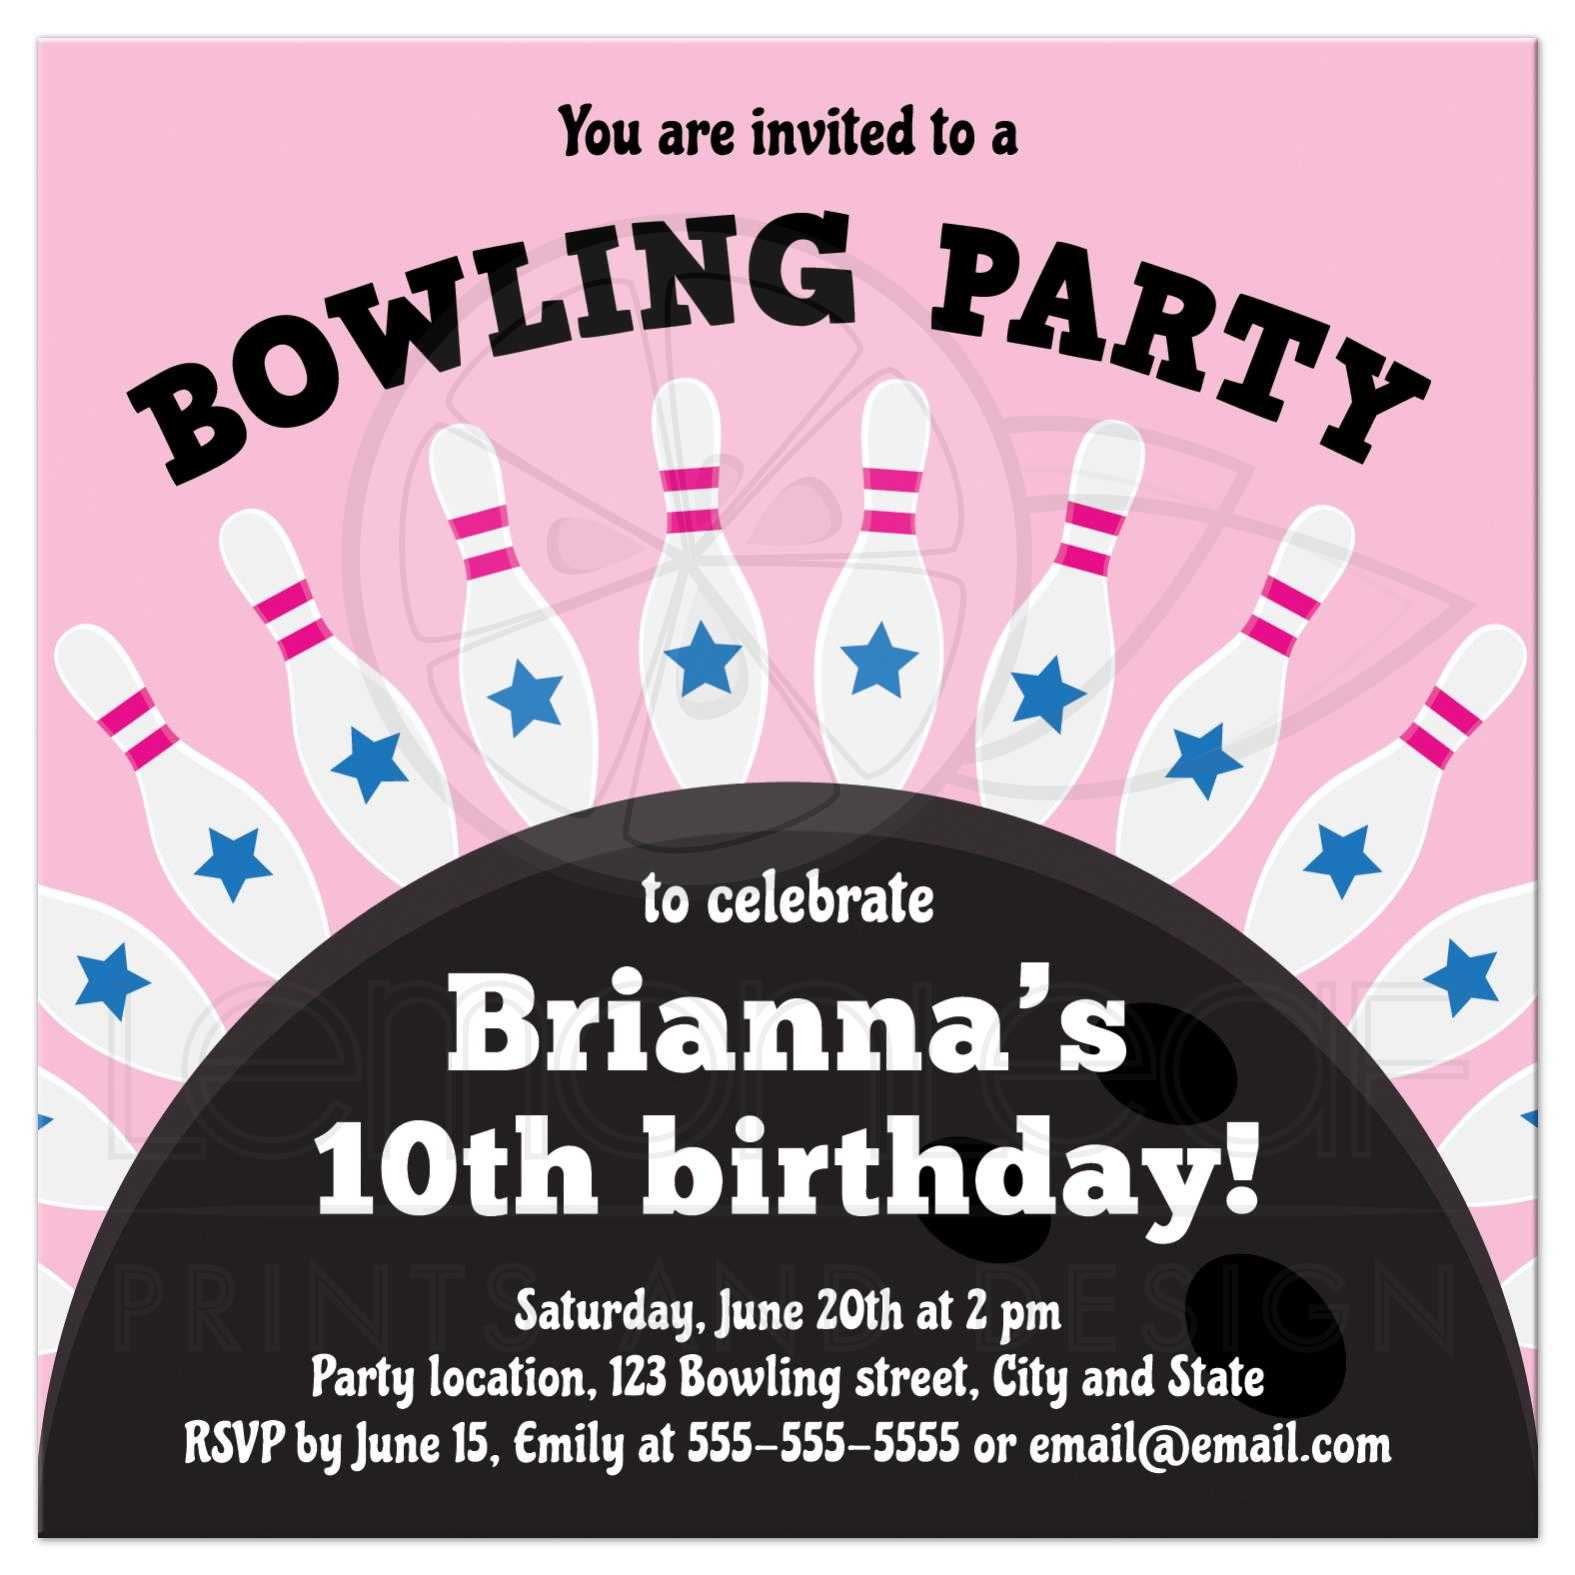 bowling birthday party invite for girls pins standing on top of ball